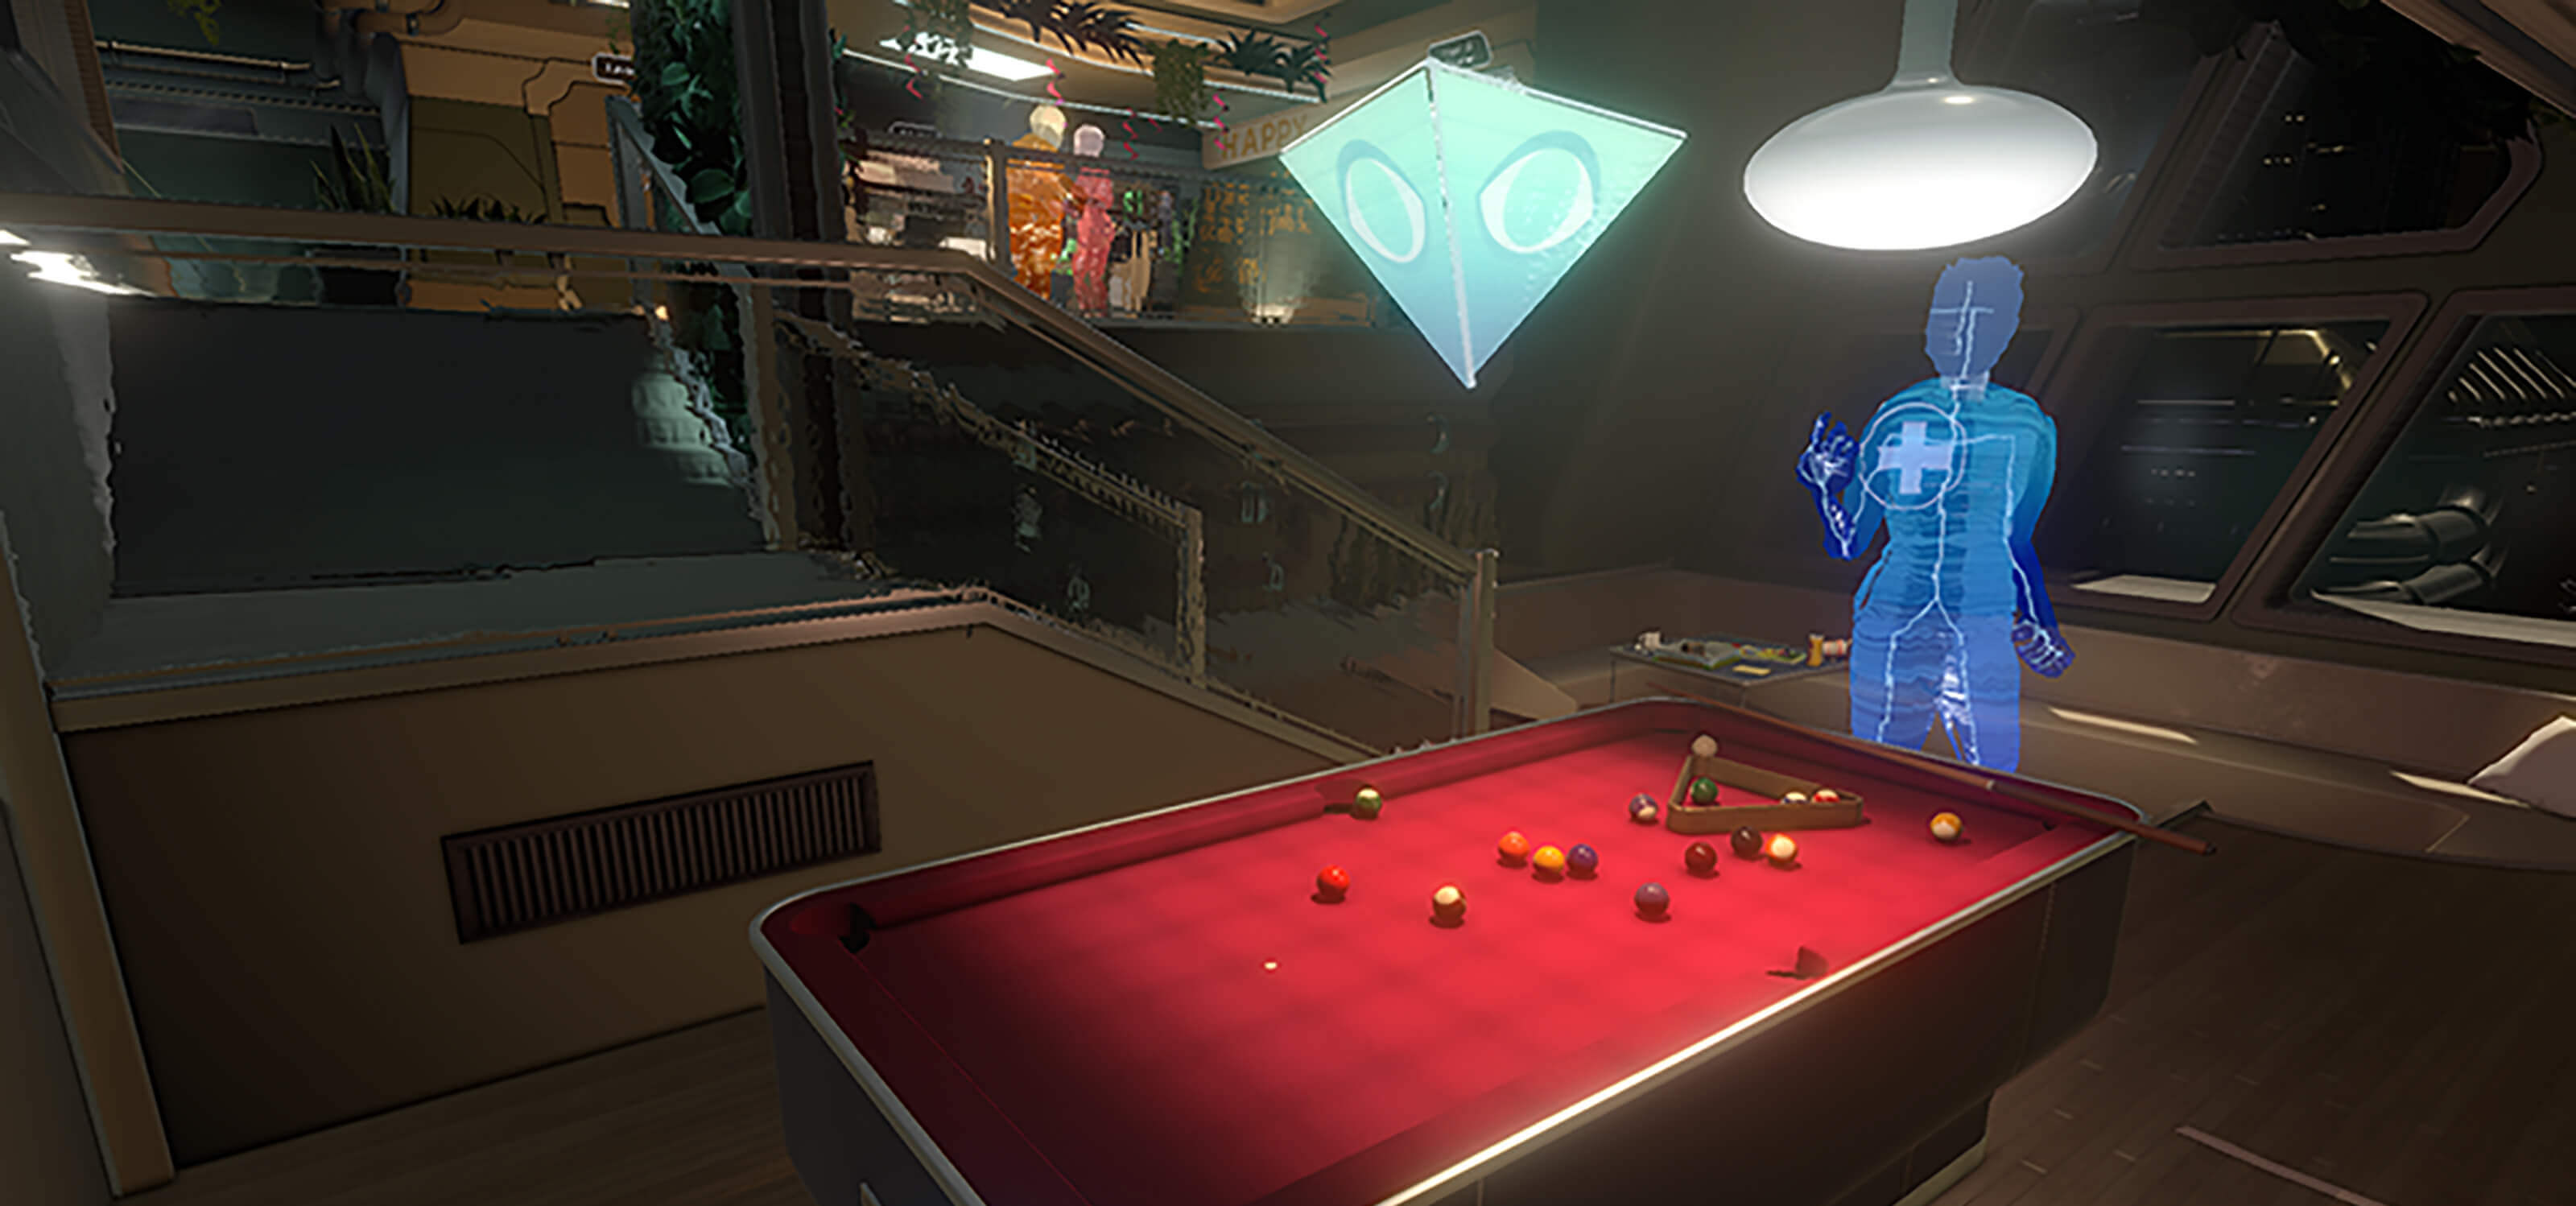 A faceless character plays pool in this screenshot from the Fullbright Company's game Tacoma